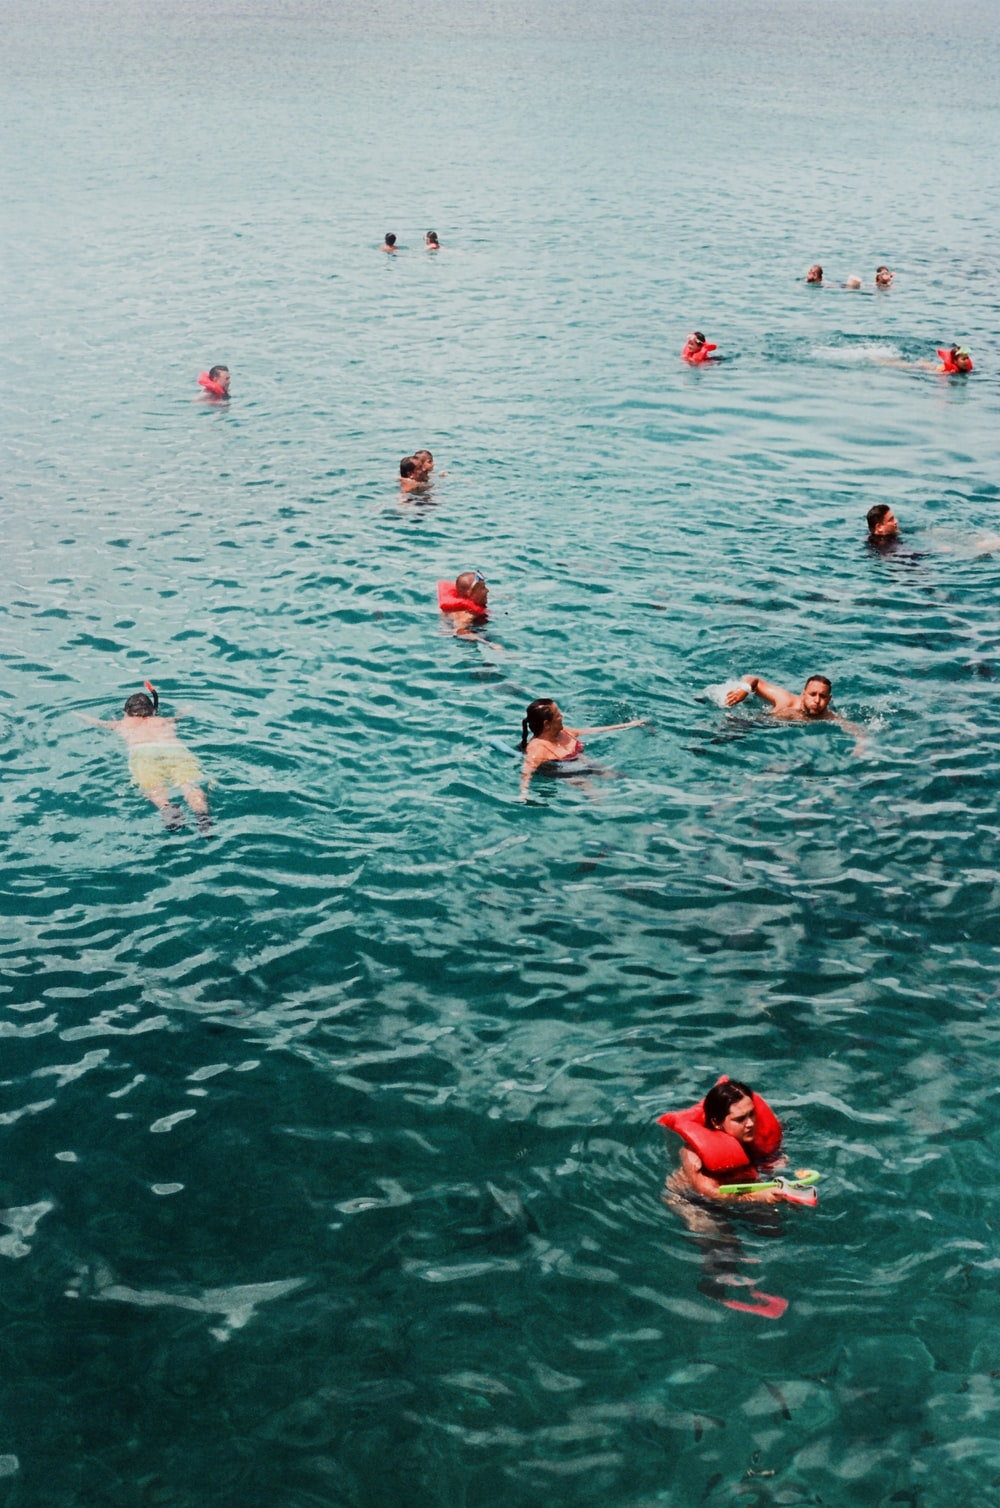 group of people swimming on water during daytime